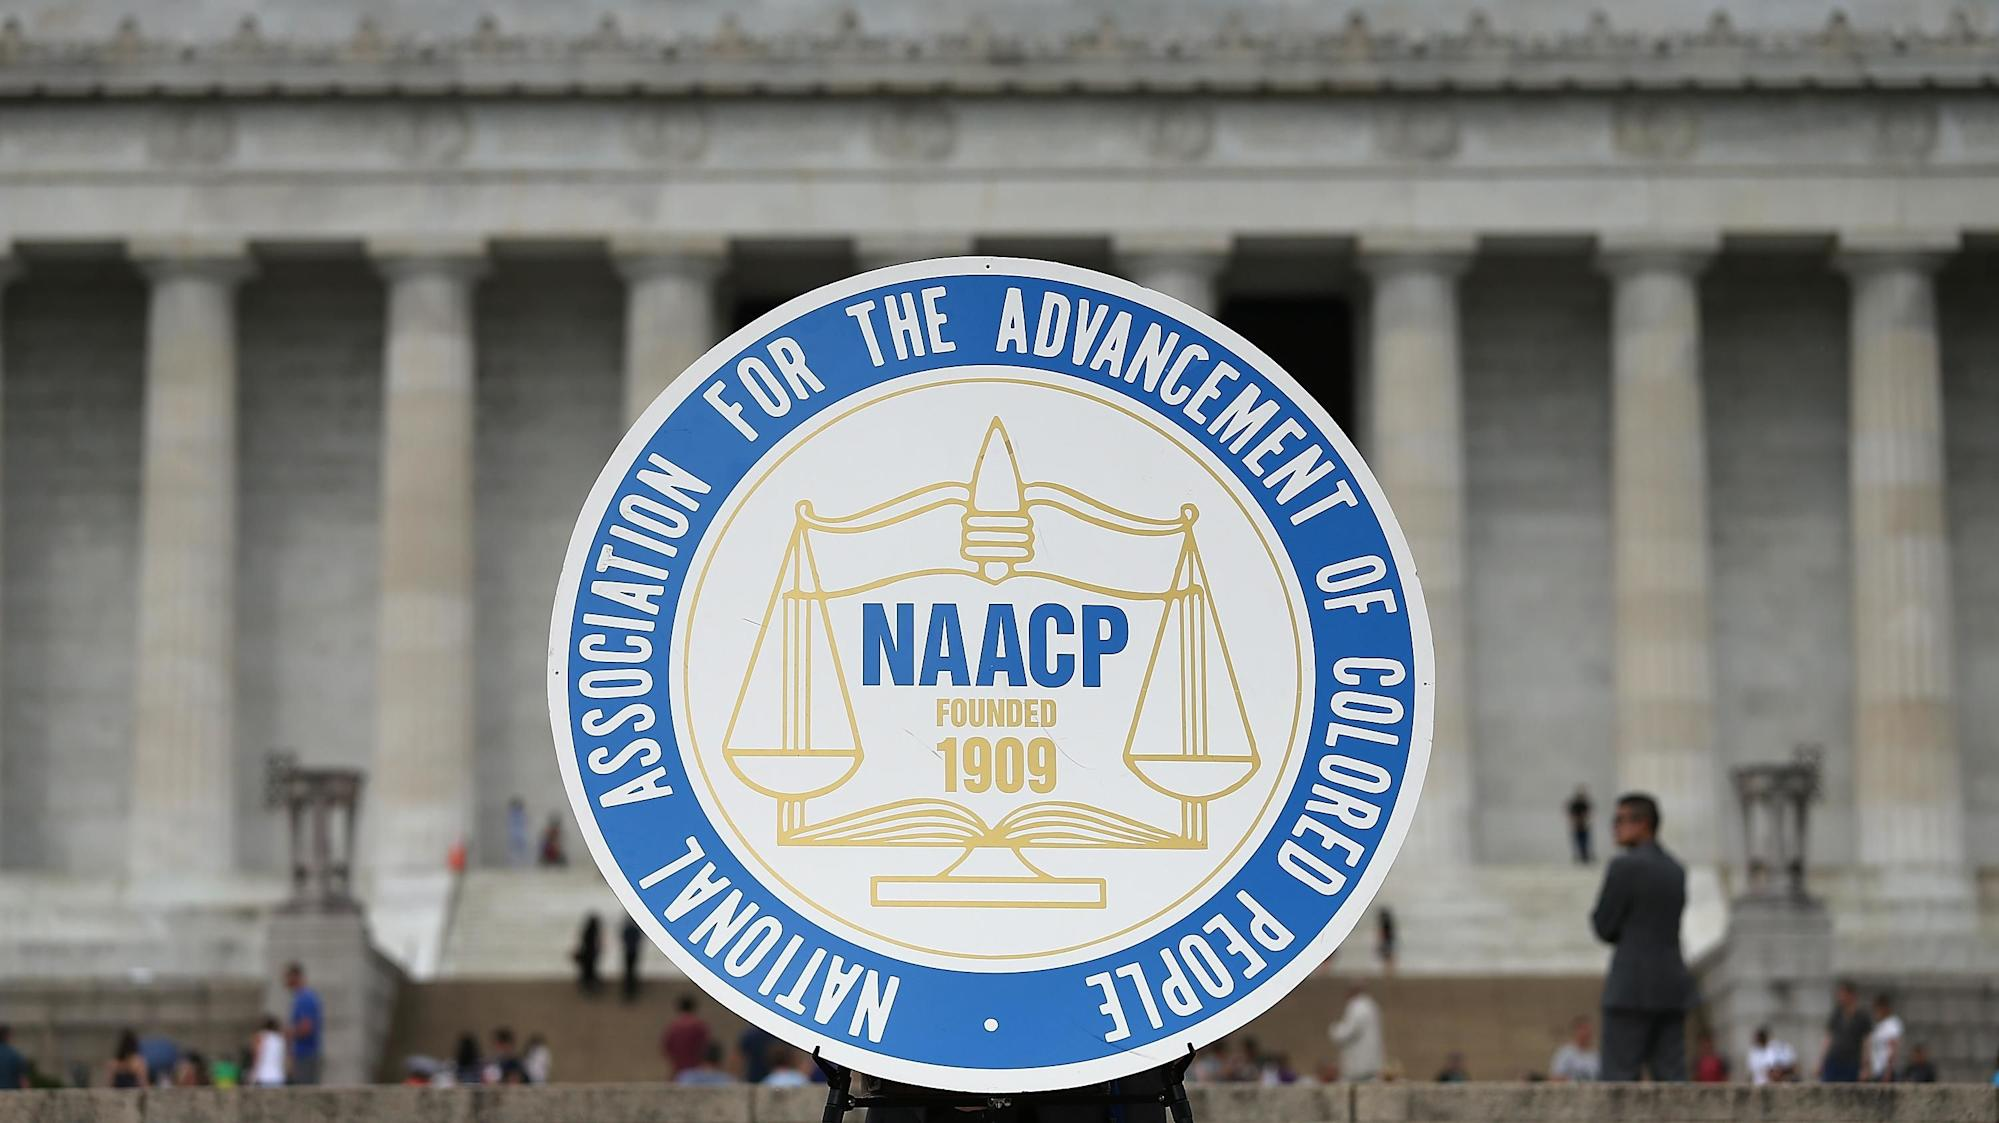 money.yahoo.com: 'We need to blow up the caste system': NAACP President on achieving equality